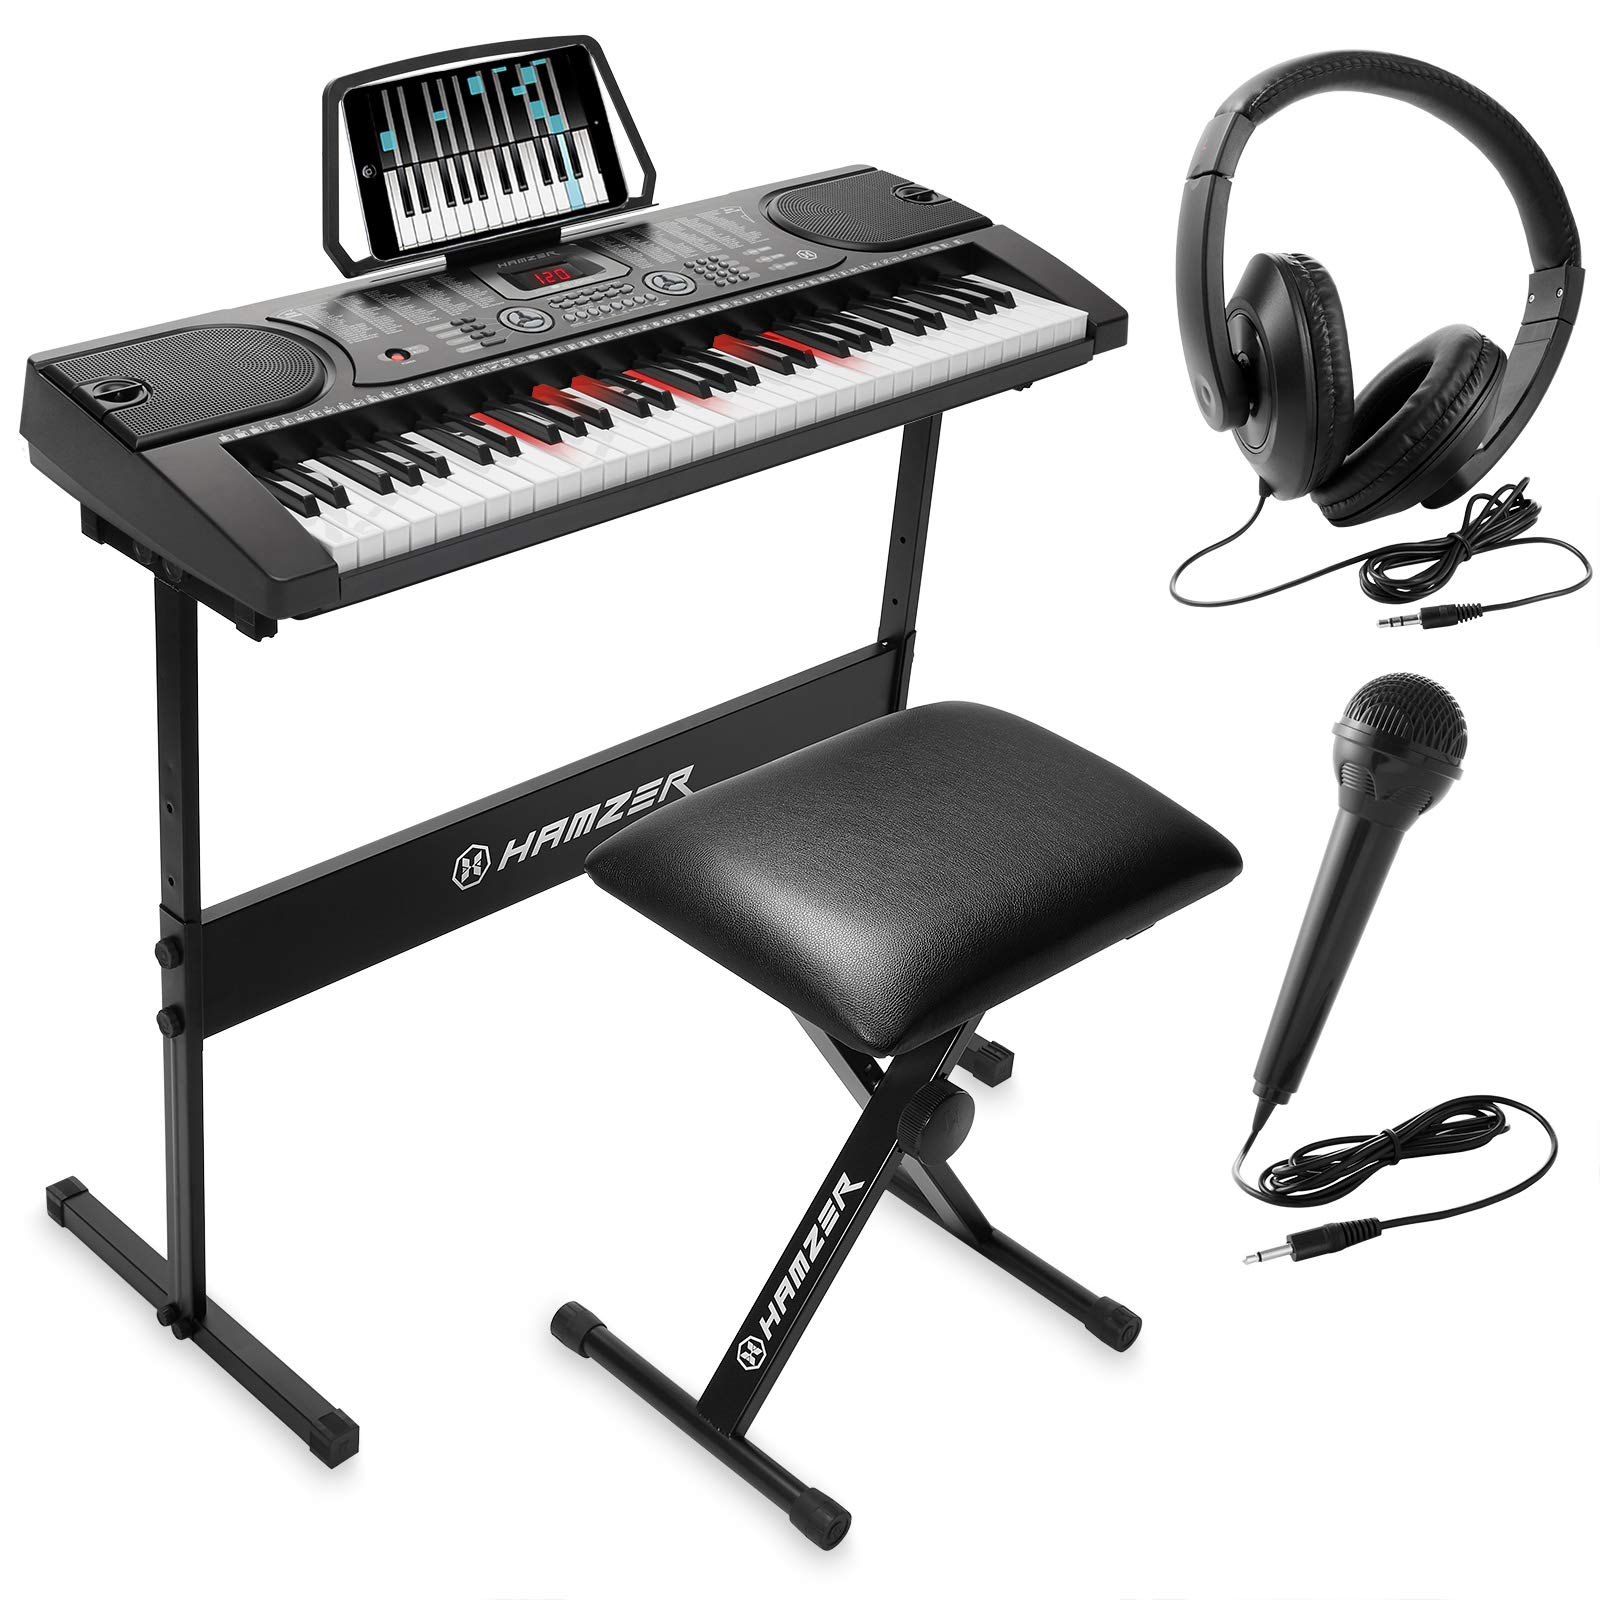 Hamzer 61-Key Electronic Keyboard Portable Digital Music Piano with Lighted Keys, H Stand, Stool, Headphones Microphone, Sticker Set by Hamzer (Image #1)